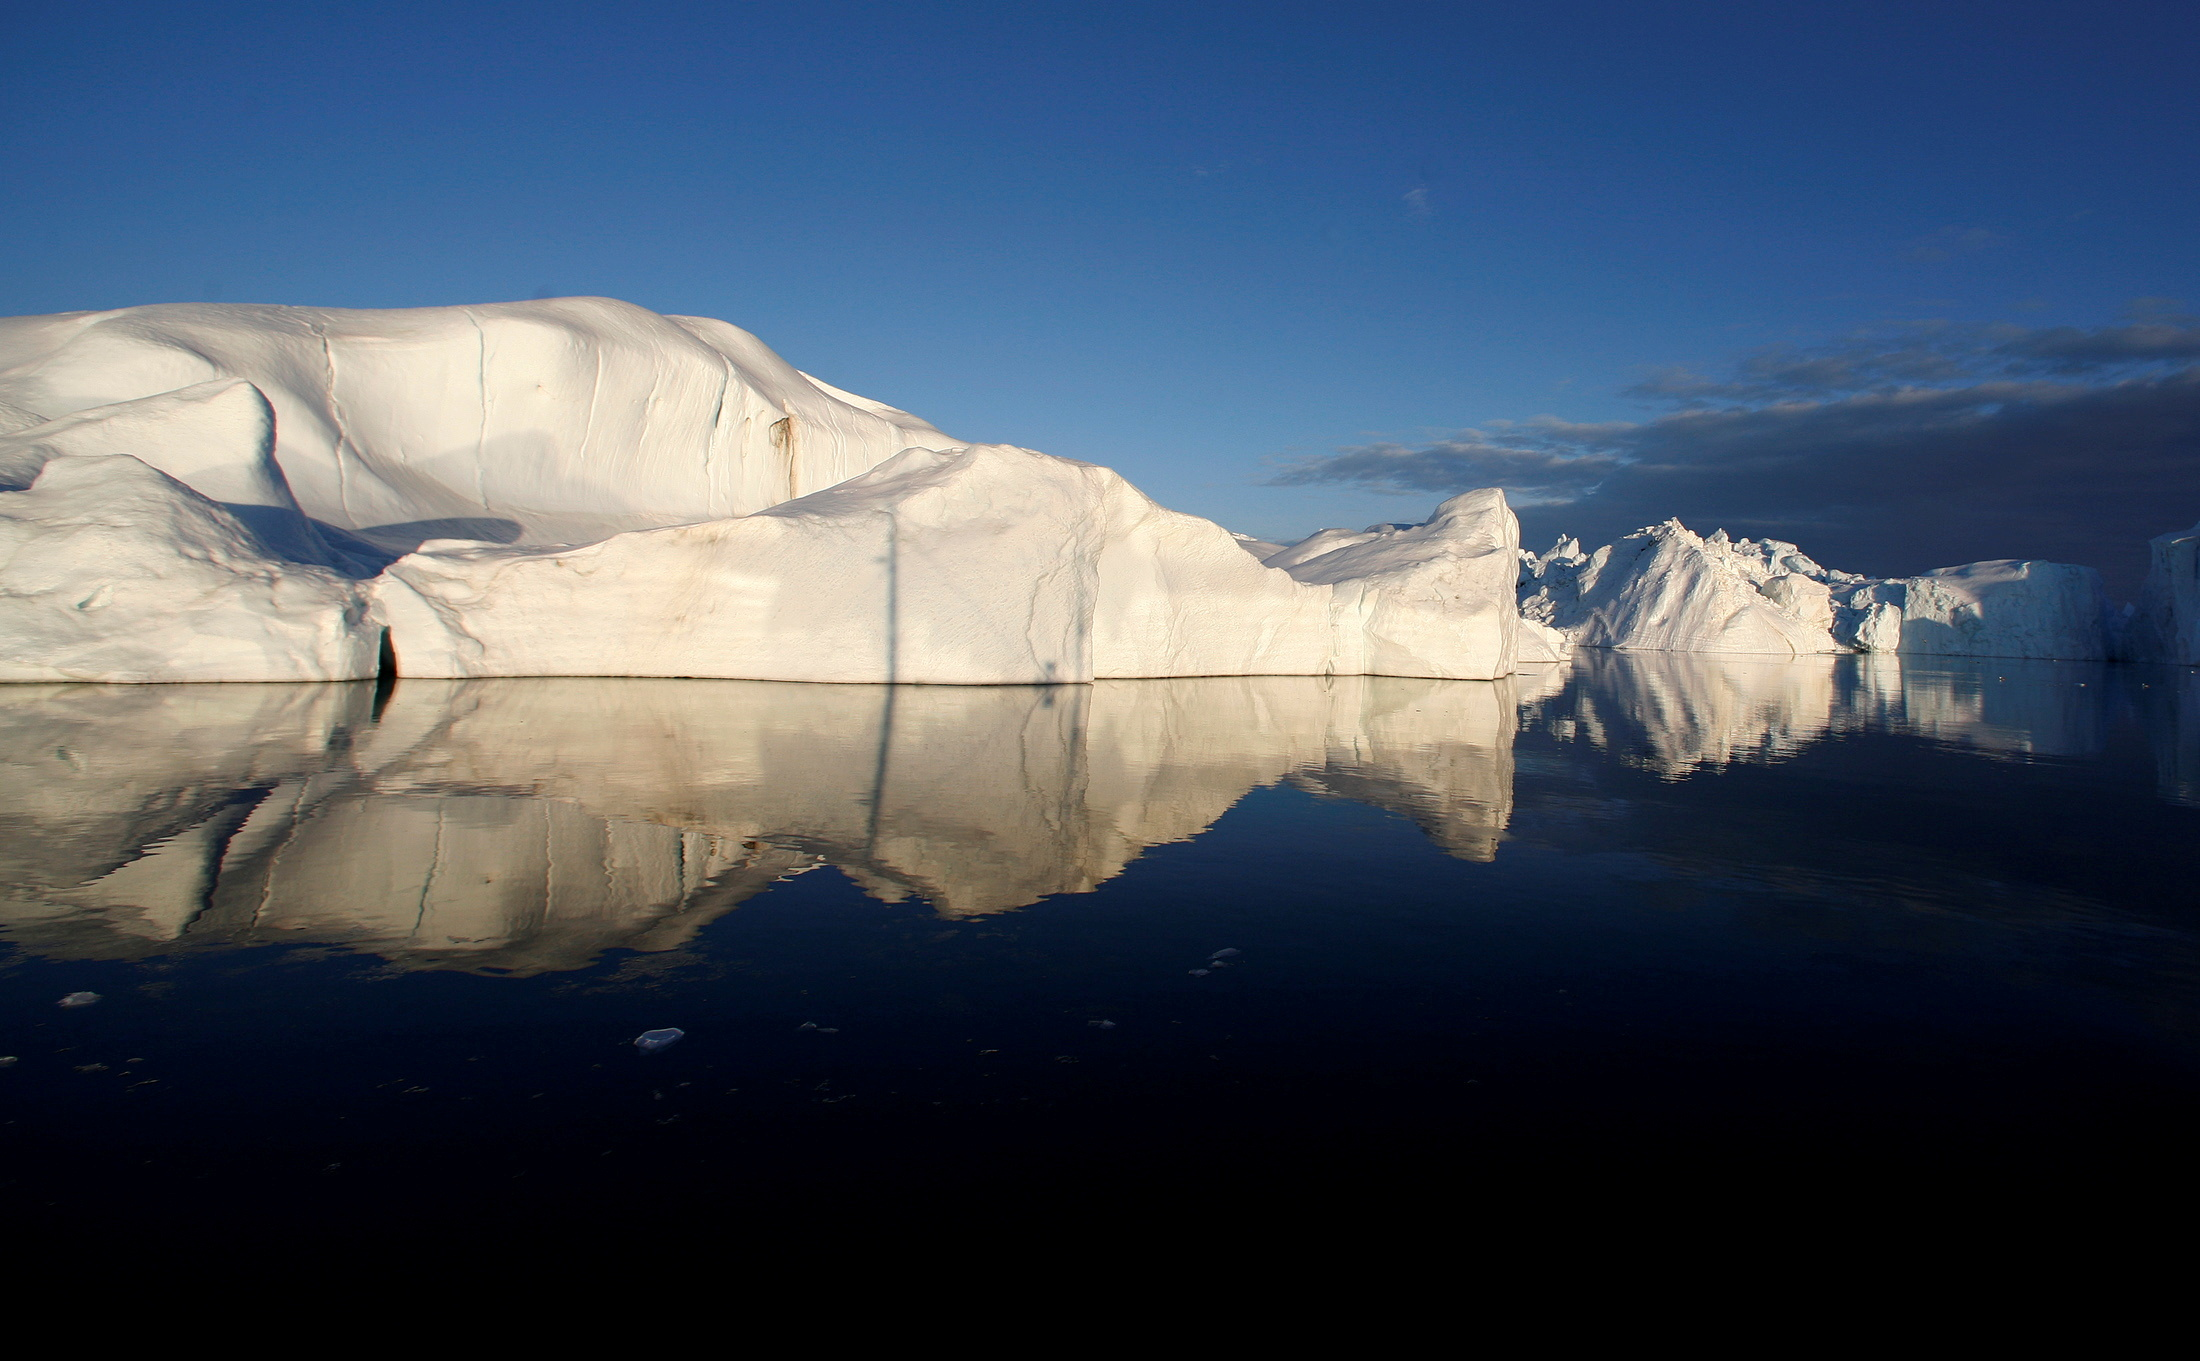 Icebergs are reflected in the calm waters at the mouth of the Jakobshavn ice fjord near Ilulissat, Greenland, May 15, 2007.  REUTERS/Bob Strong